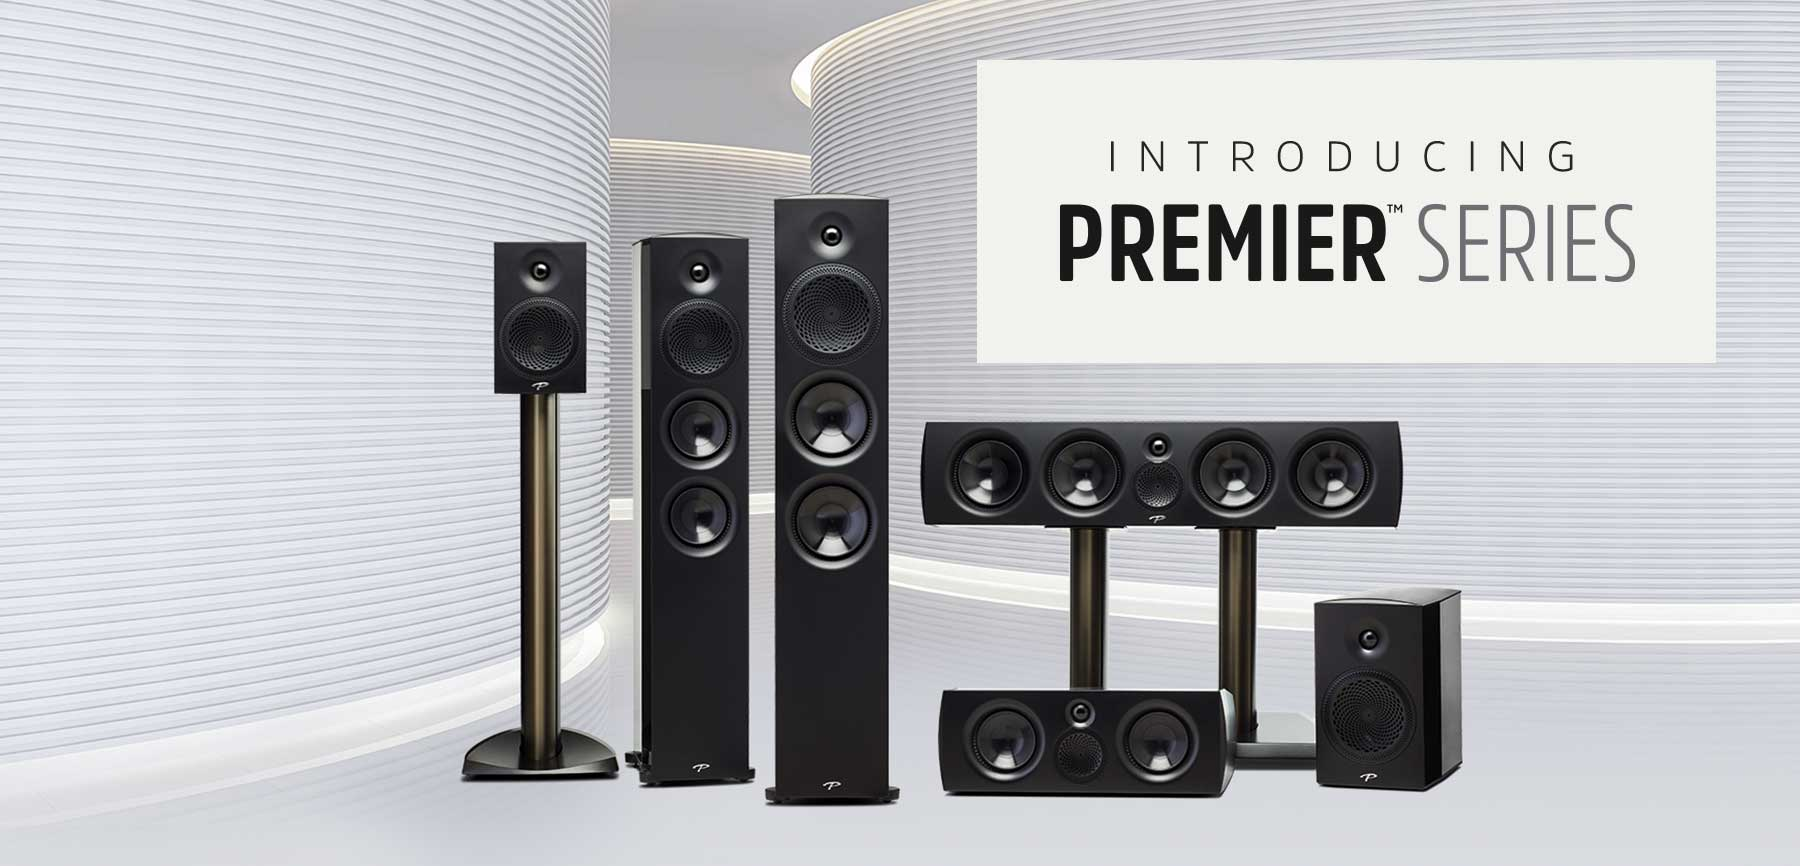 Paradigm High Performance Audio Crafted In Canada Home Theater Wiring With Cable Box Your Exact Measurements Delivering Sound For The Ultimate Bespoke Flat Panel Tv Installationall Custom